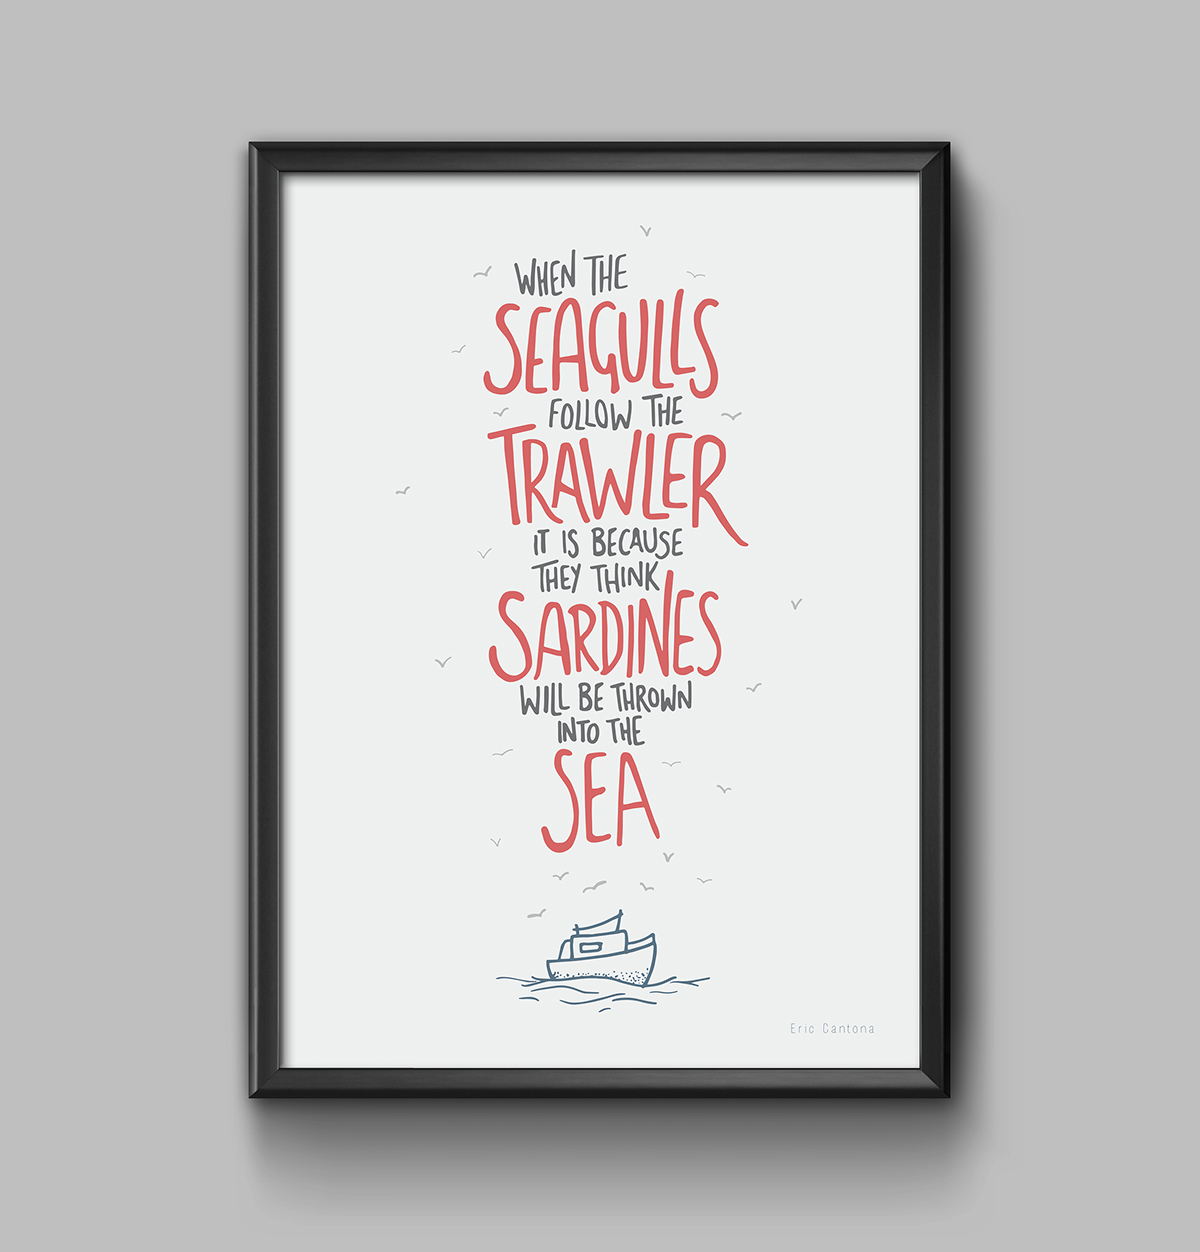 When the seagulls follow the trawler, it is because they think sardines will be thrown. Football Quotes Typographic Posters Gallery Footy Fair